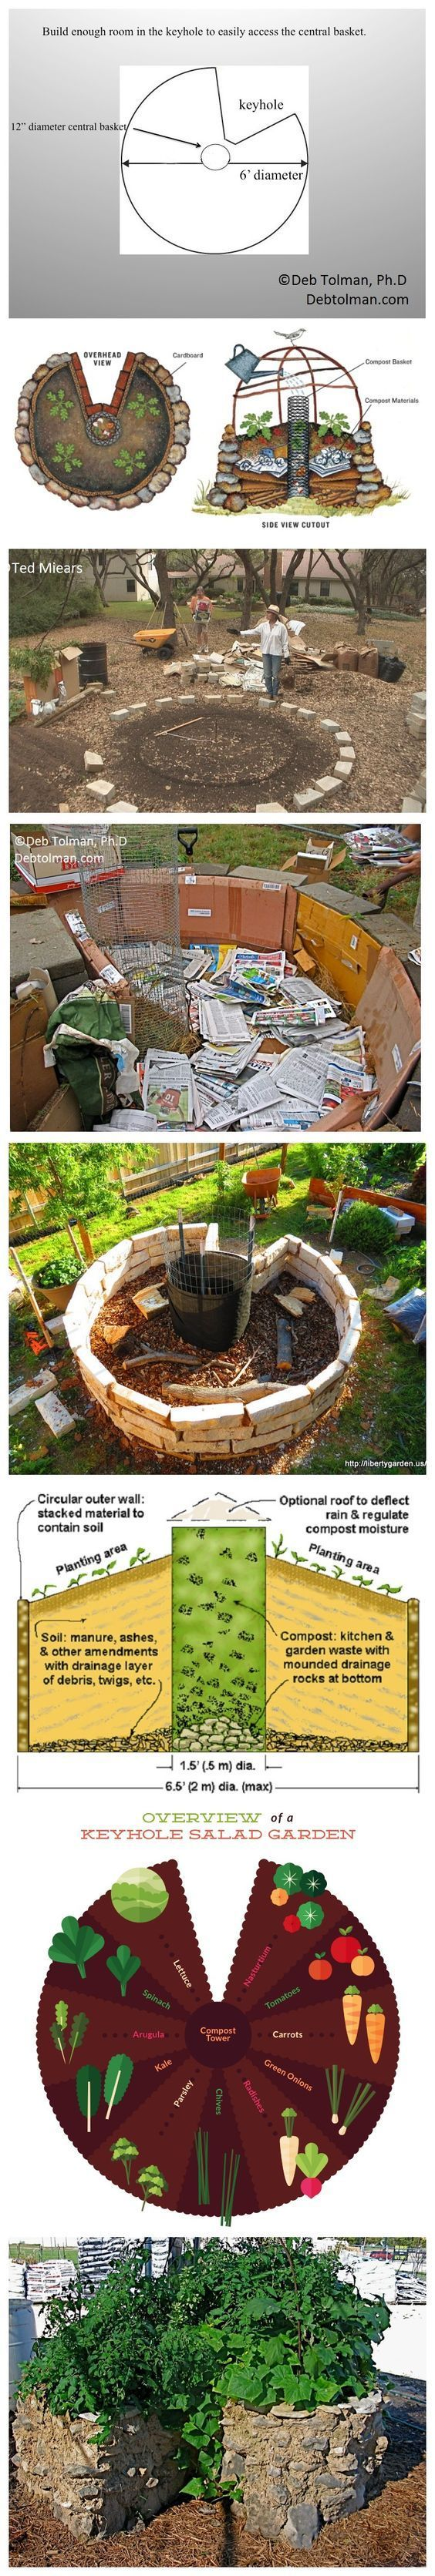 Keyhole garden. Designed for arid environments with poor soil, it's a raised bed system with a built in compost basket. Self fertilizing, and super efficient at holding in moisture. Can be built in a day. Uses 1 gallon of water a day.: